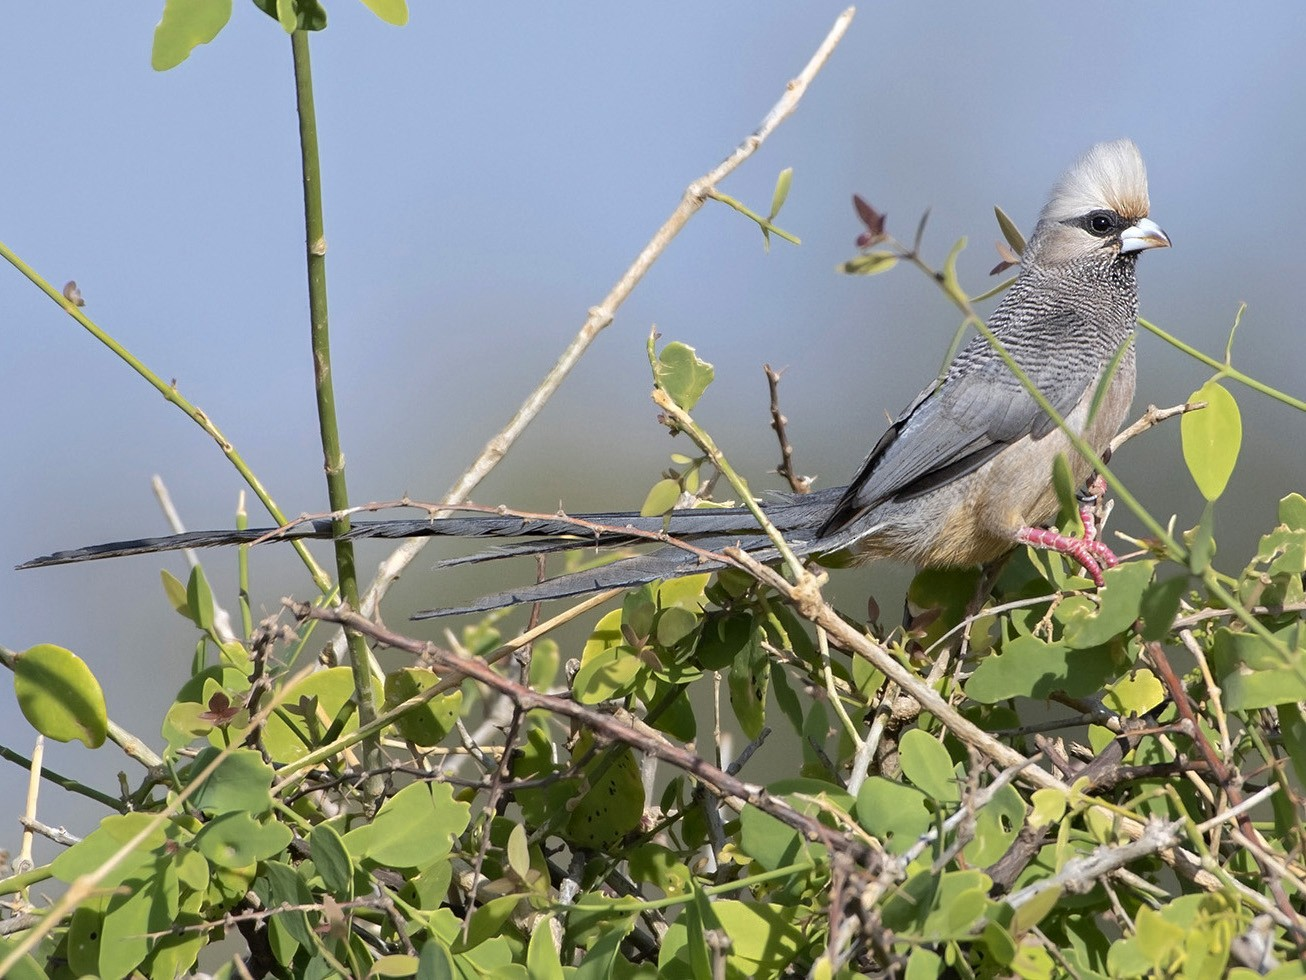 White-headed Mousebird - Debra Herst